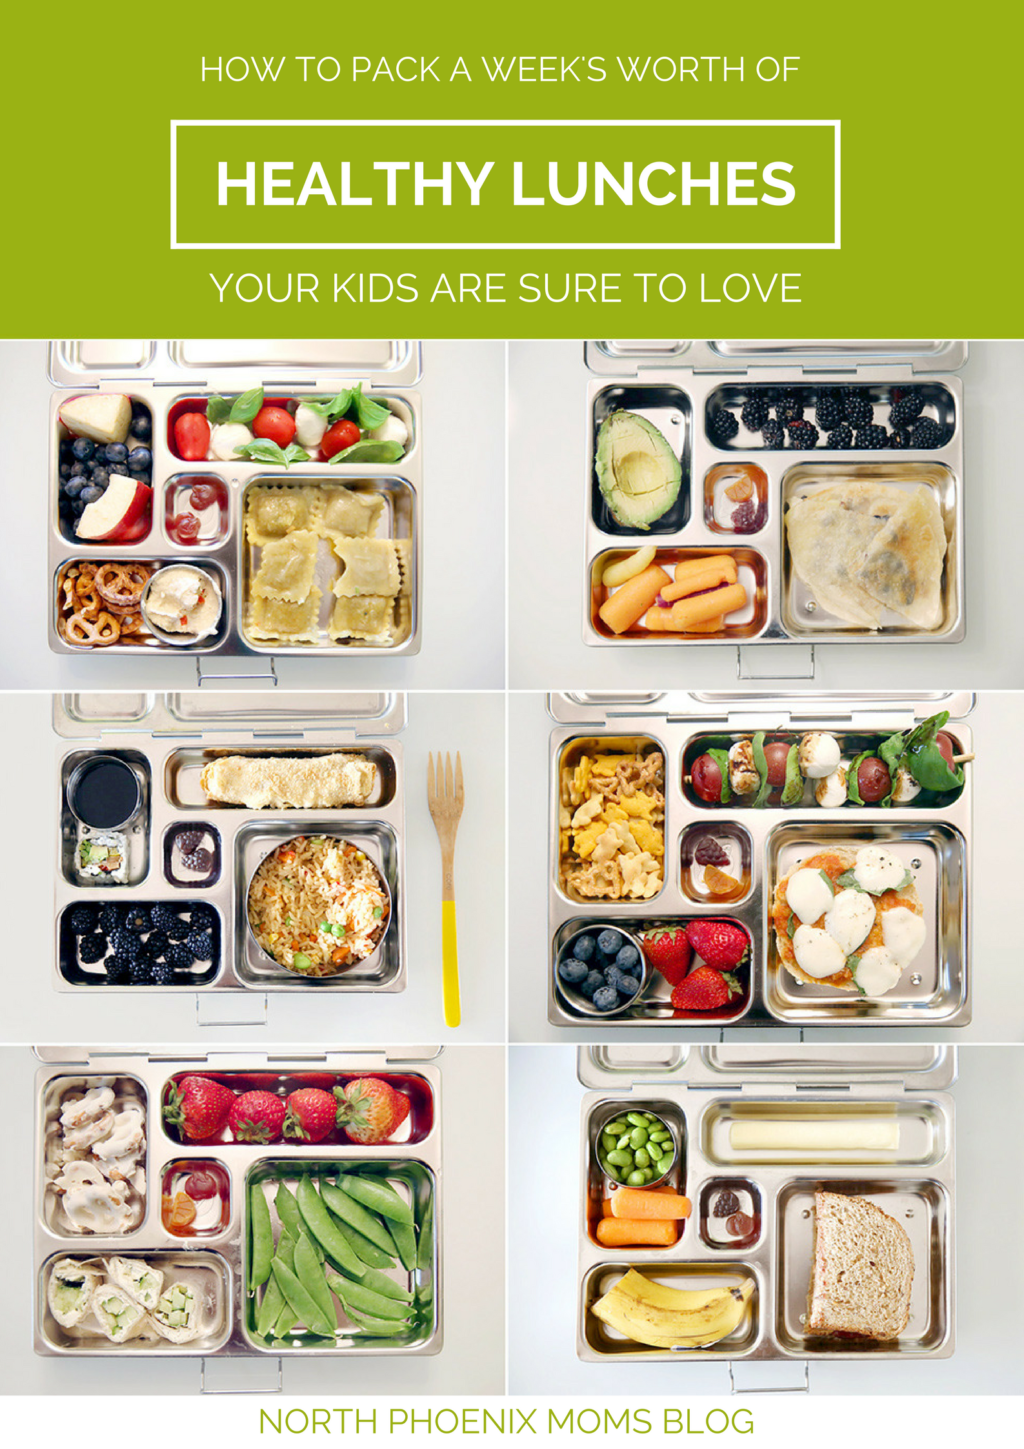 How To Pack a Week's Worth of Healthy Lunches Your Kids Are Sure to Love | North Phoenix Moms Blog